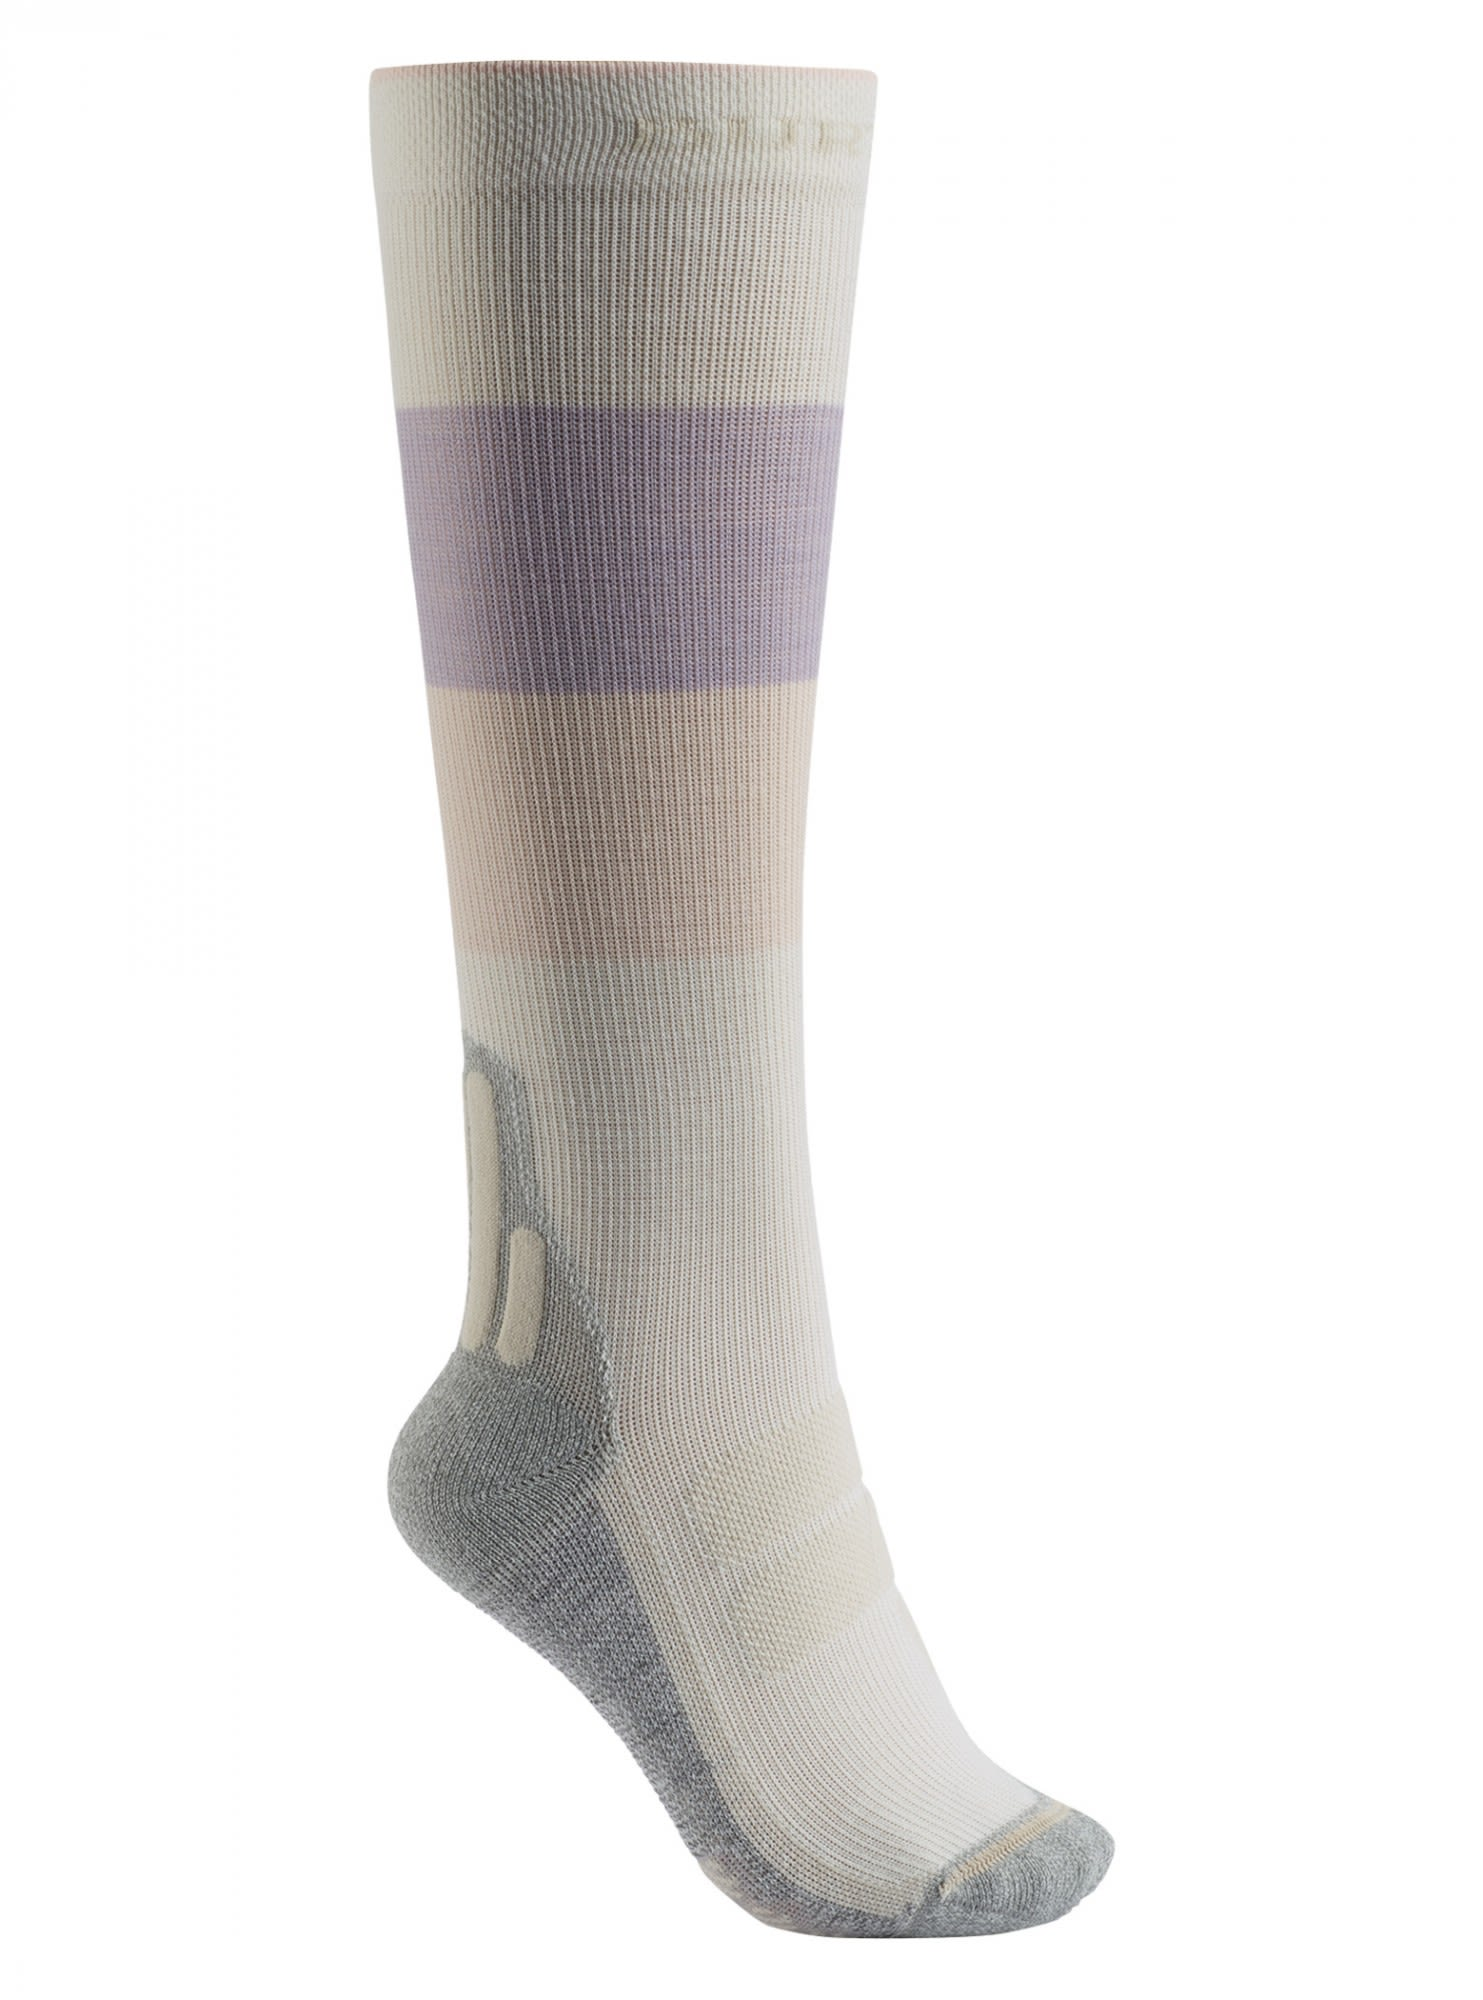 Burton Performance Plus Ultralight Compression Sock Beige, Female Merino S/M -Fa